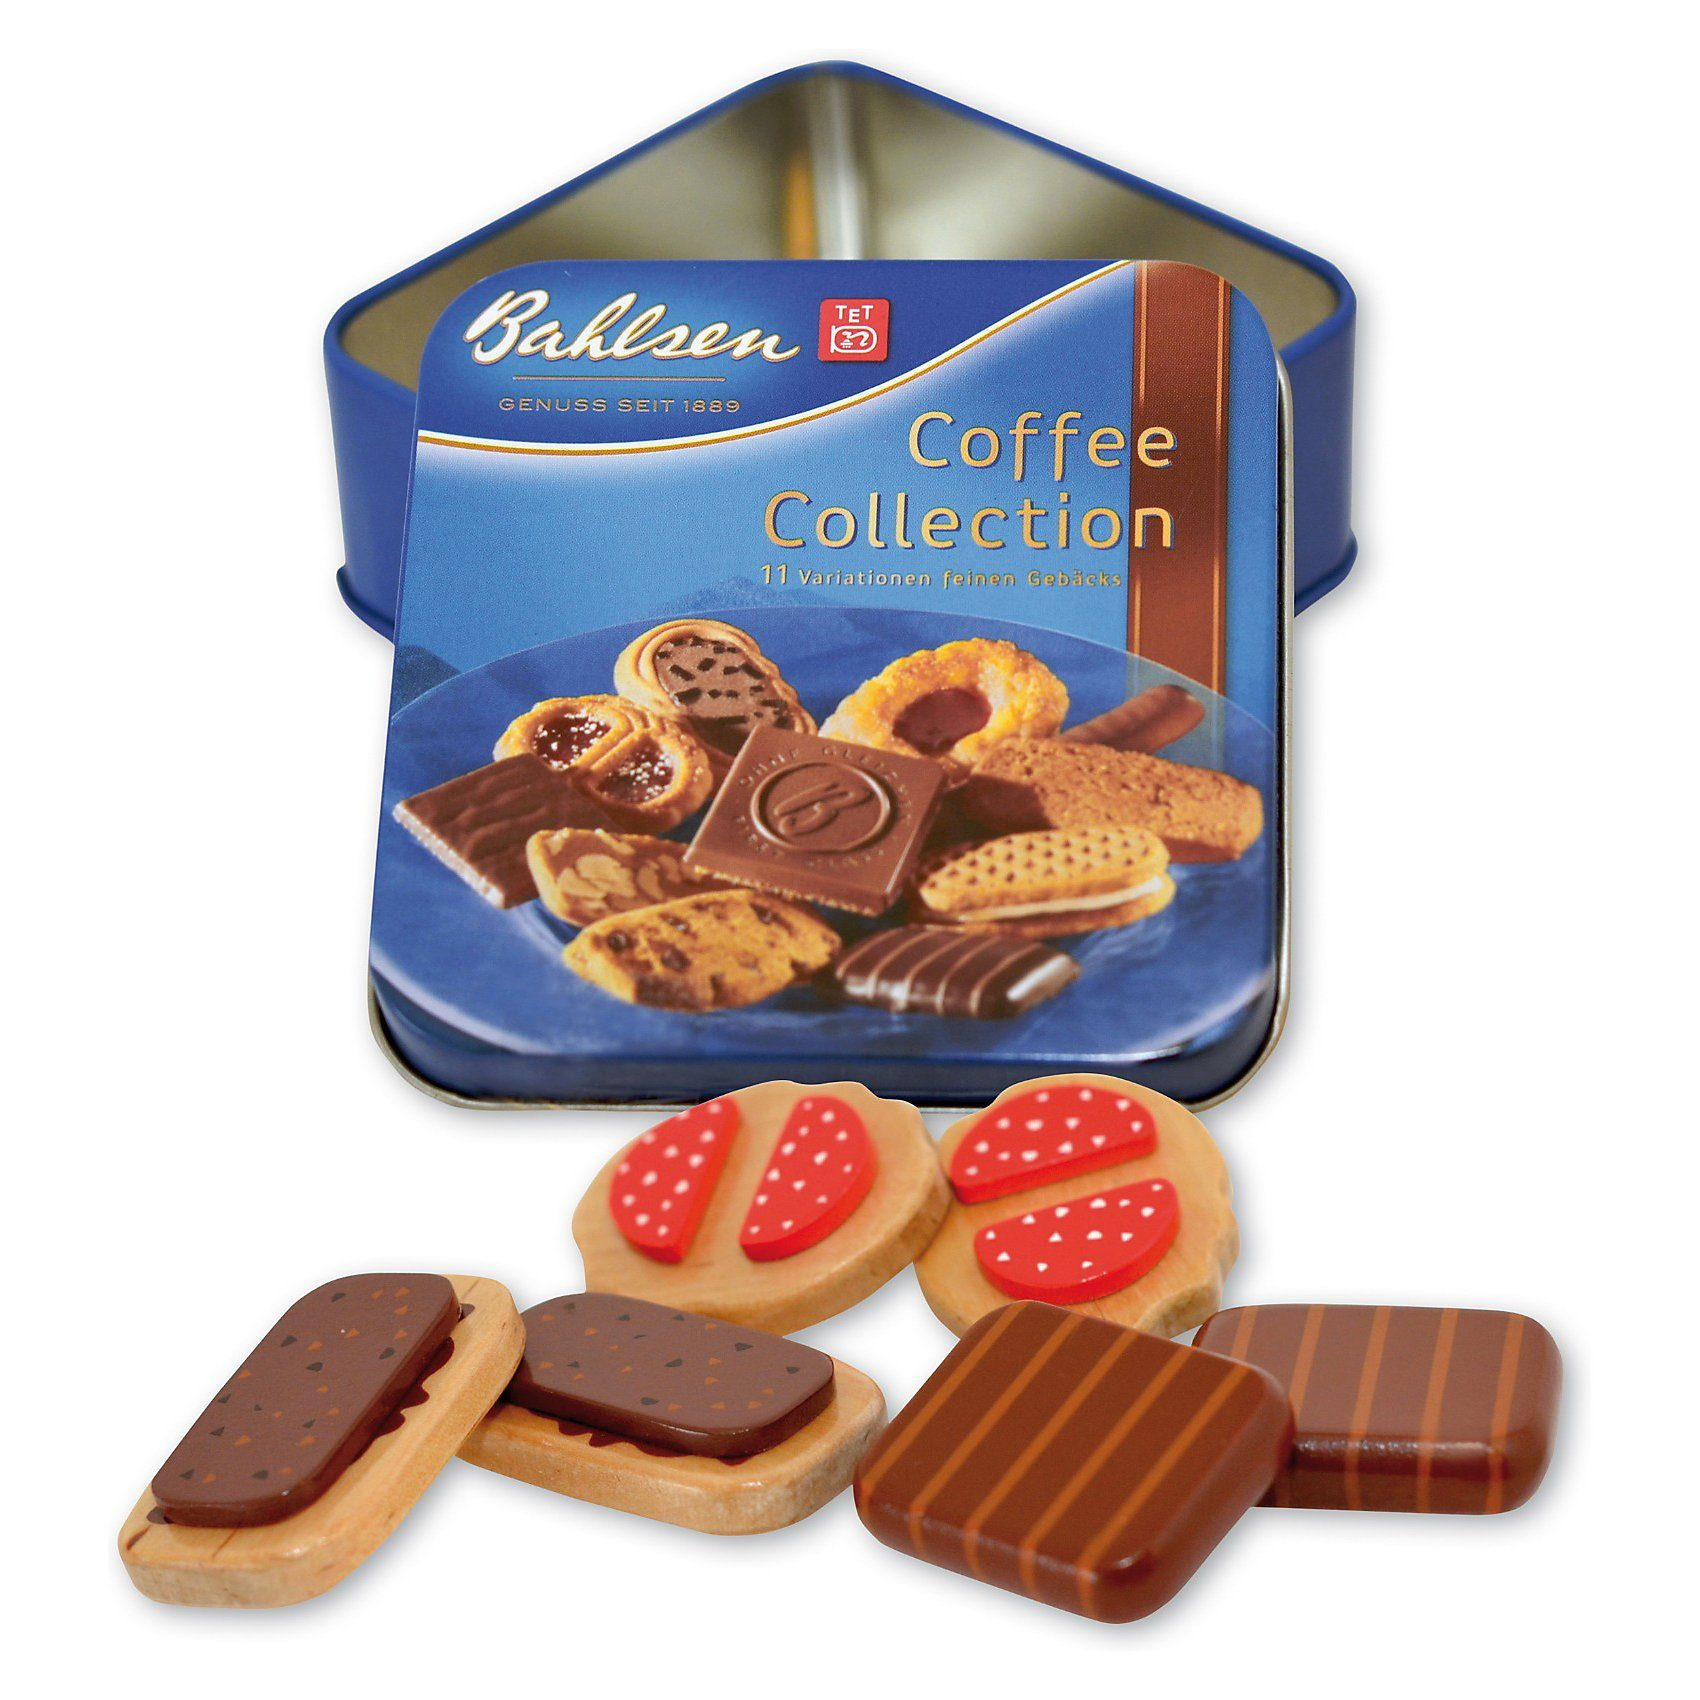 Chr. Tanner Spiellebensmittel Bahlsen Coffee Collection